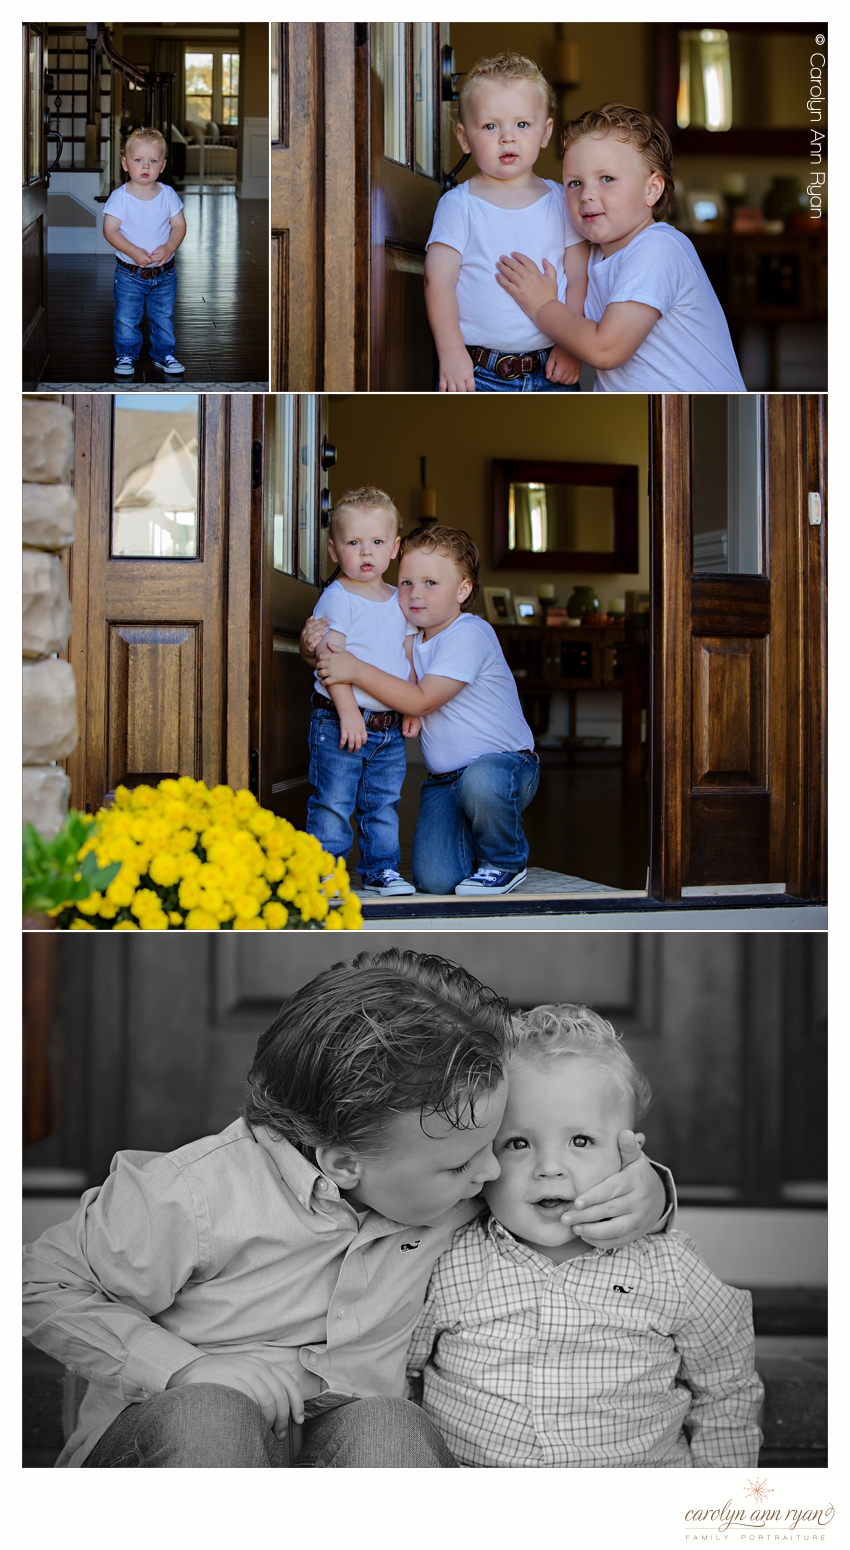 Family Portrait Photographer, Carolyn Ann Ryan, creates adorable portraits